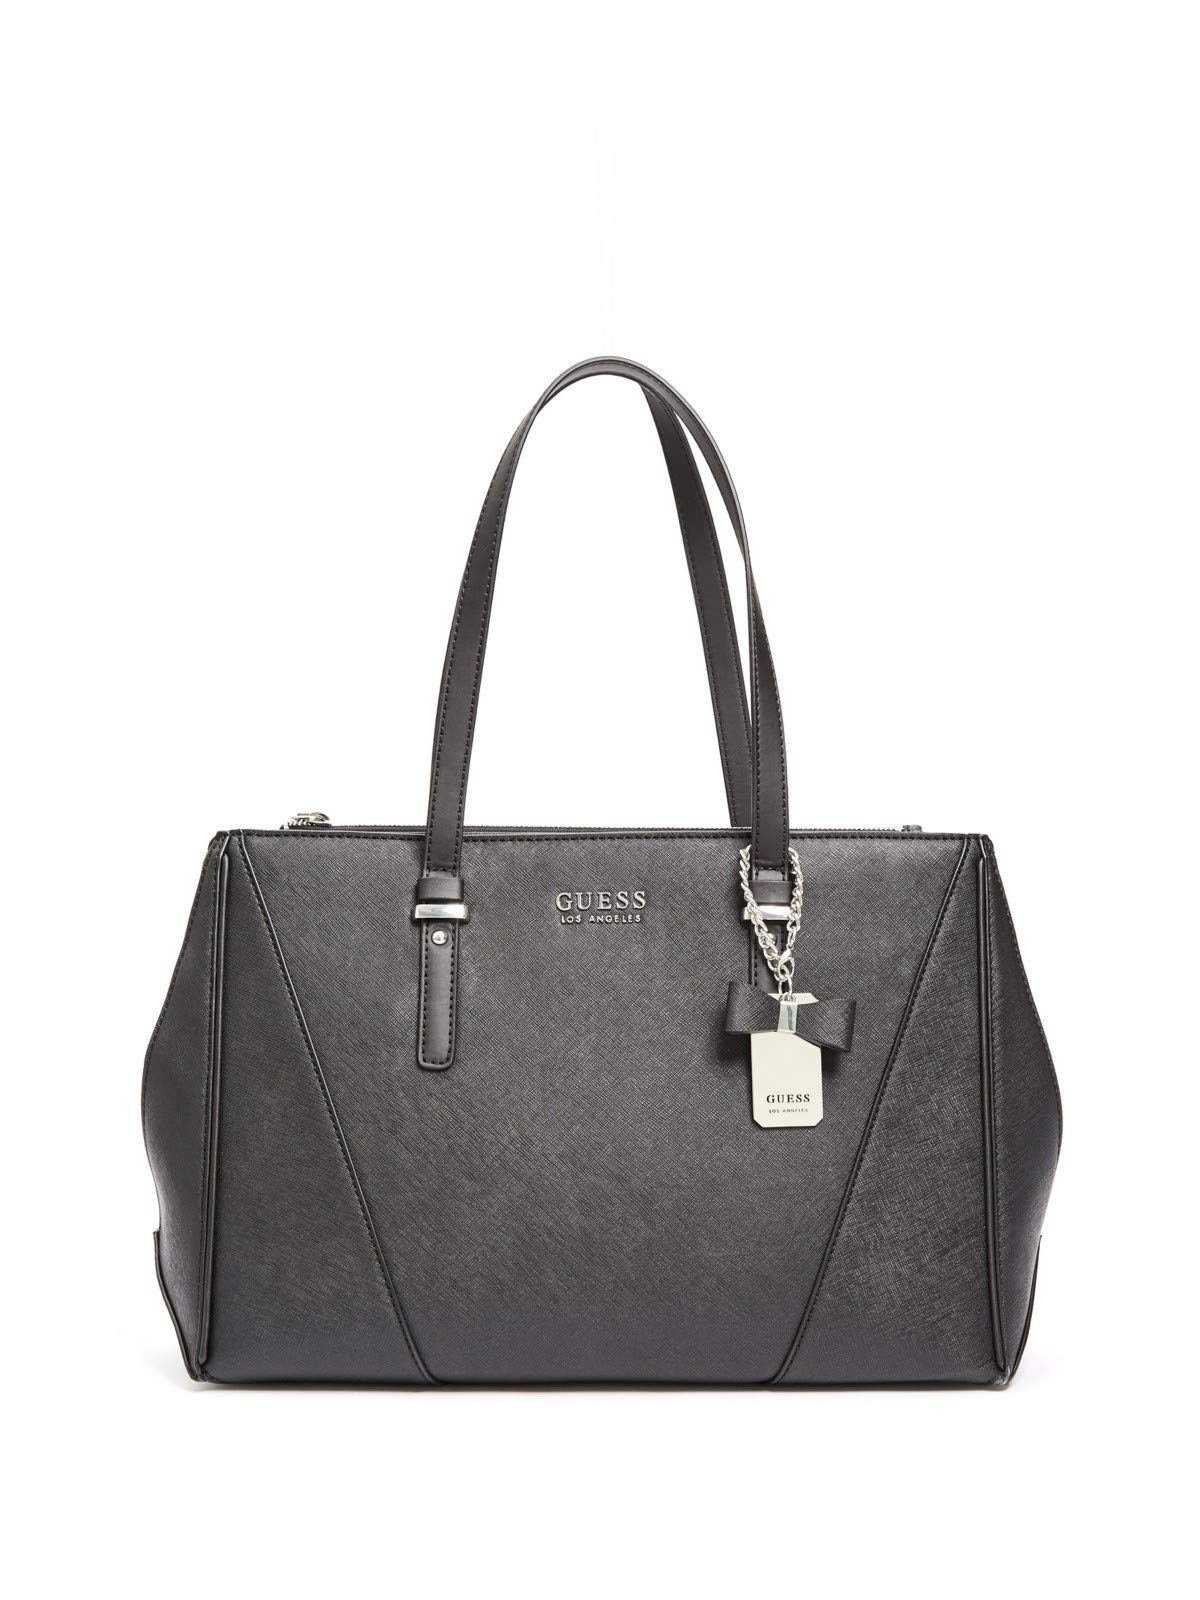 GUESS Factory Women's Greenwell Logo Large Satchel